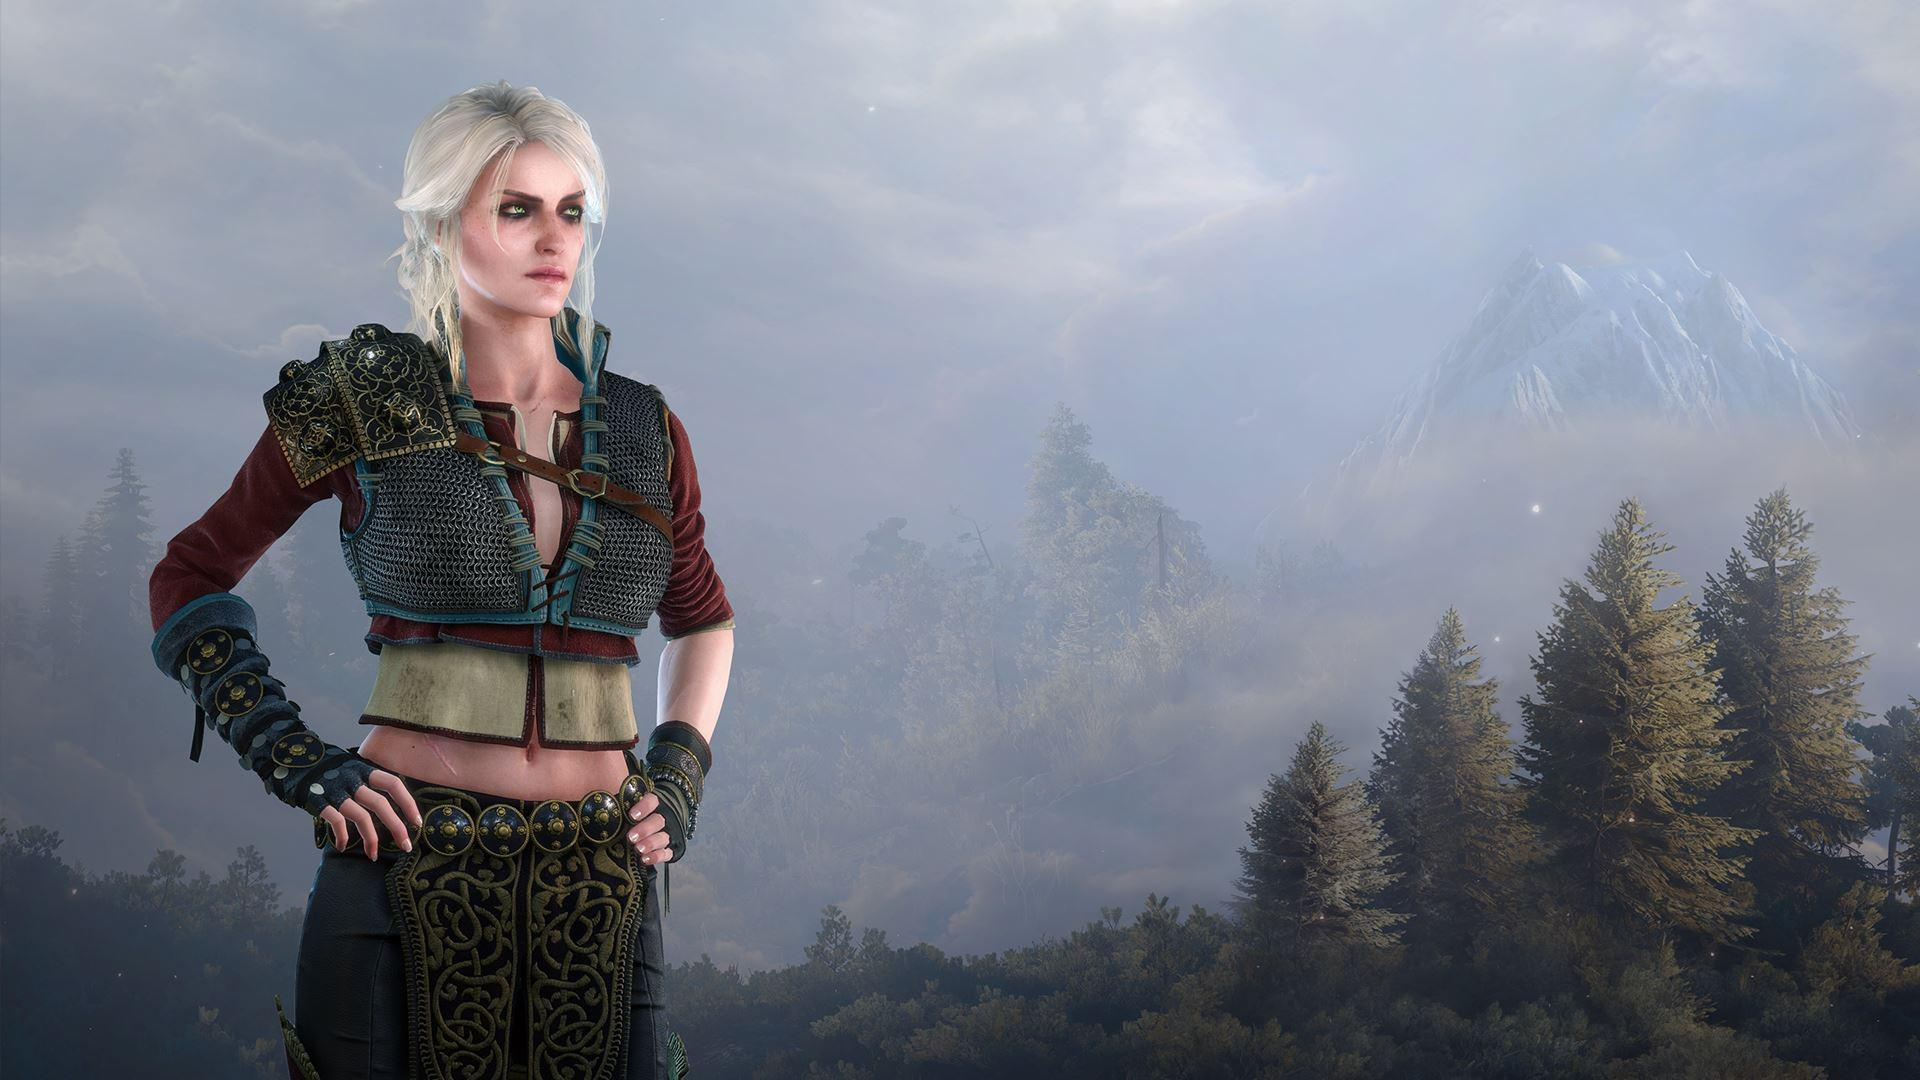 Geralt Ciri Combo p Wallpaper Made By me Feedback Greatly